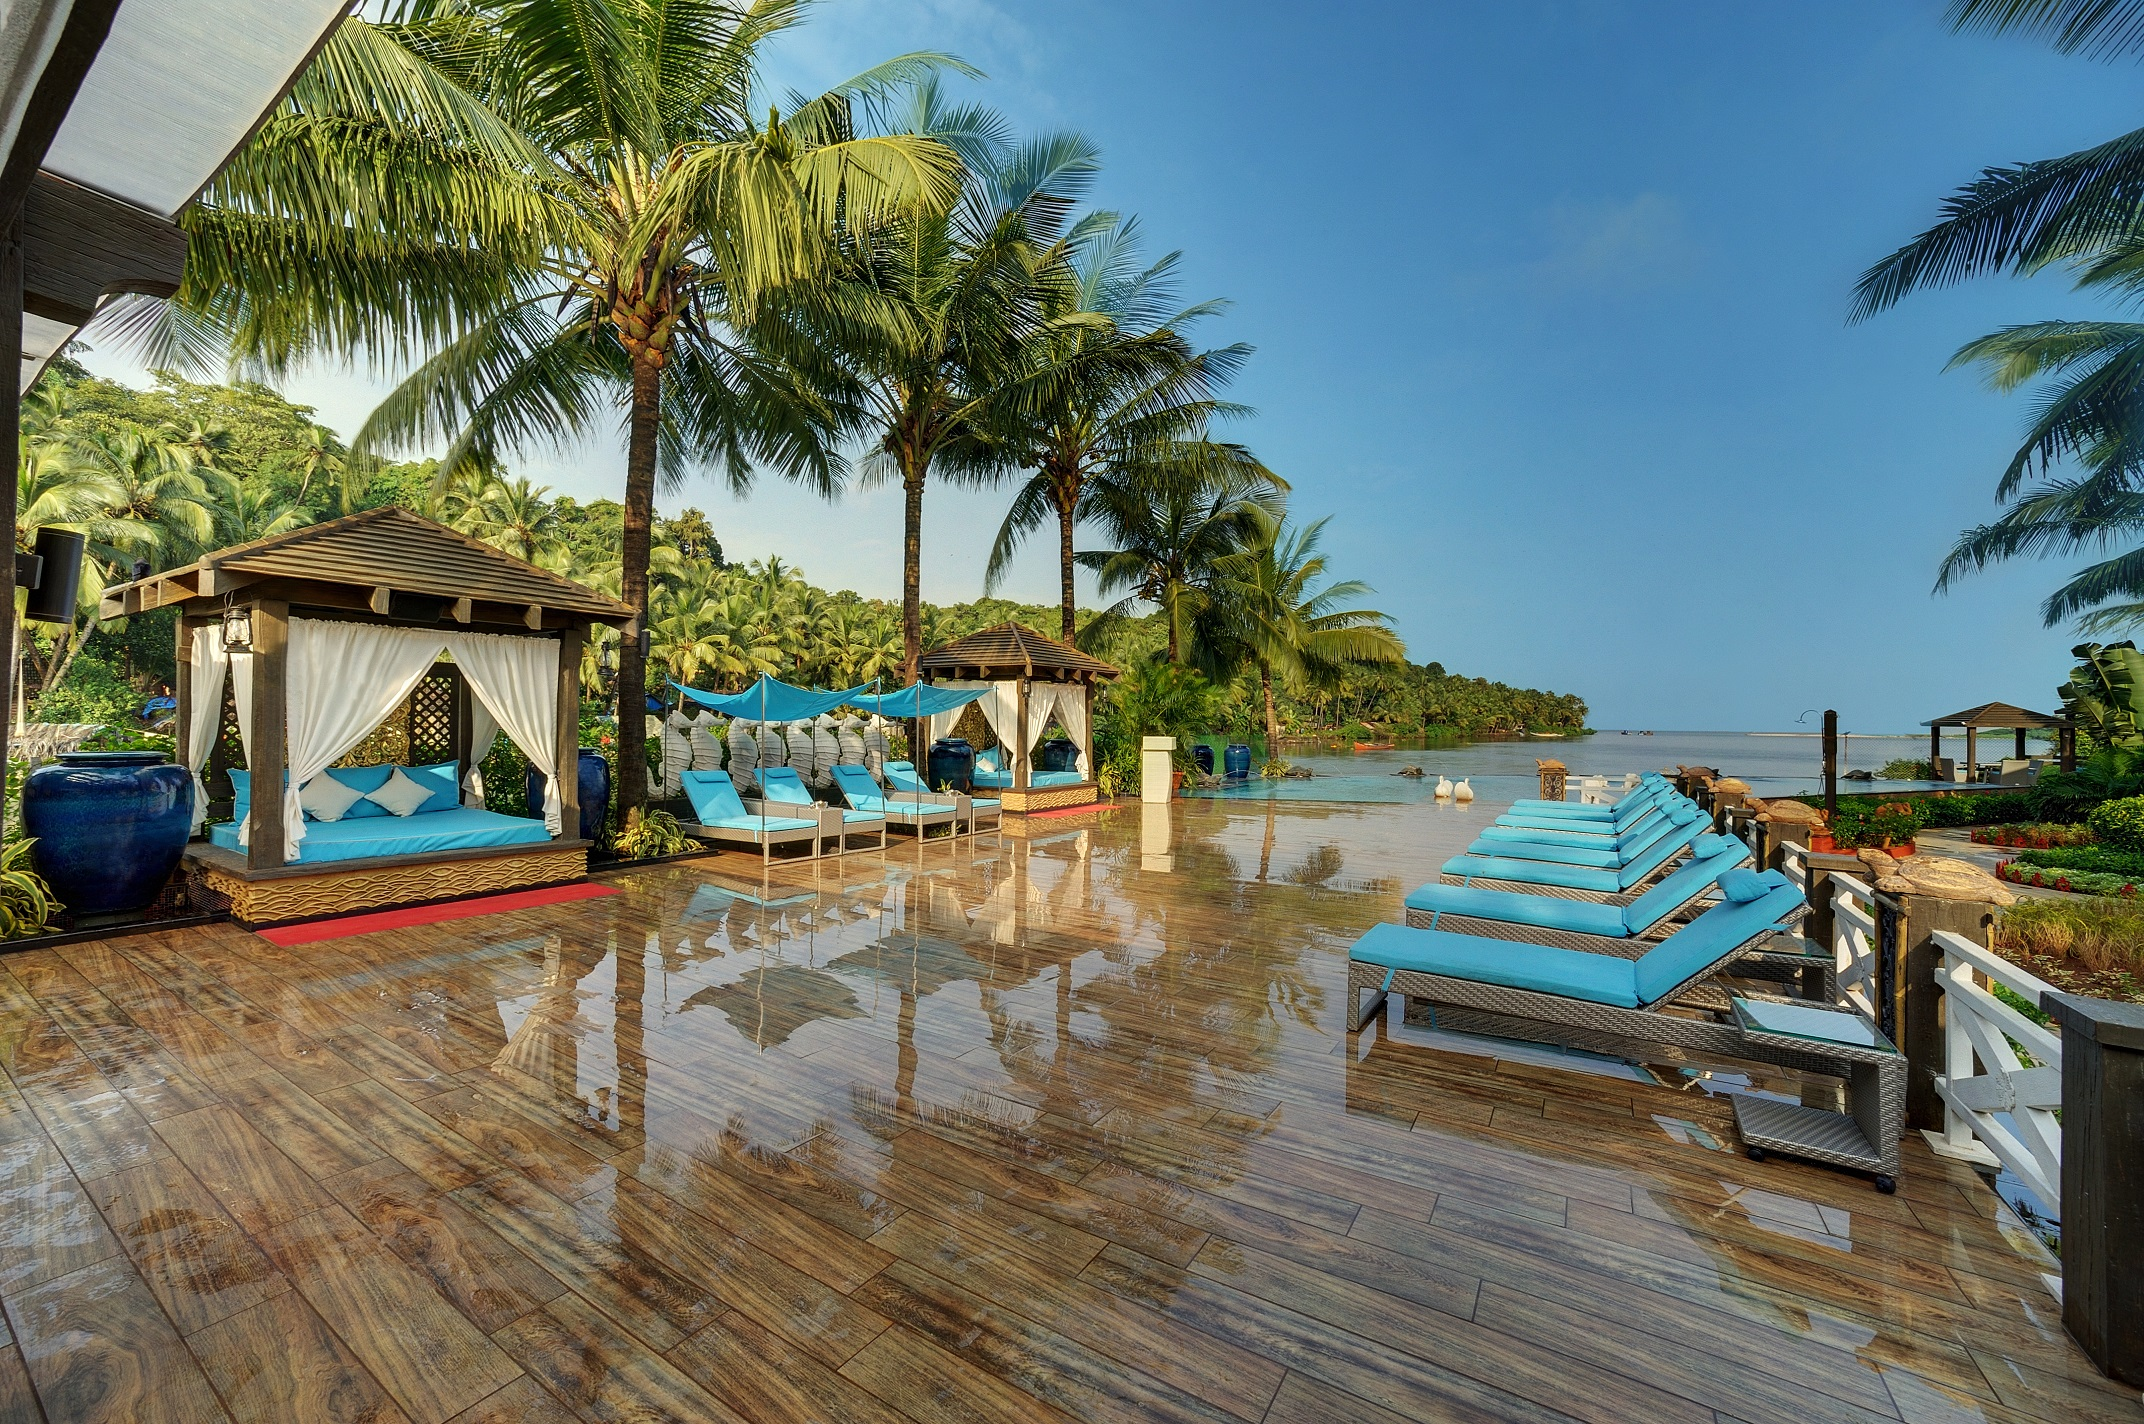 Beach Hotels & Resorts in India - photo#43